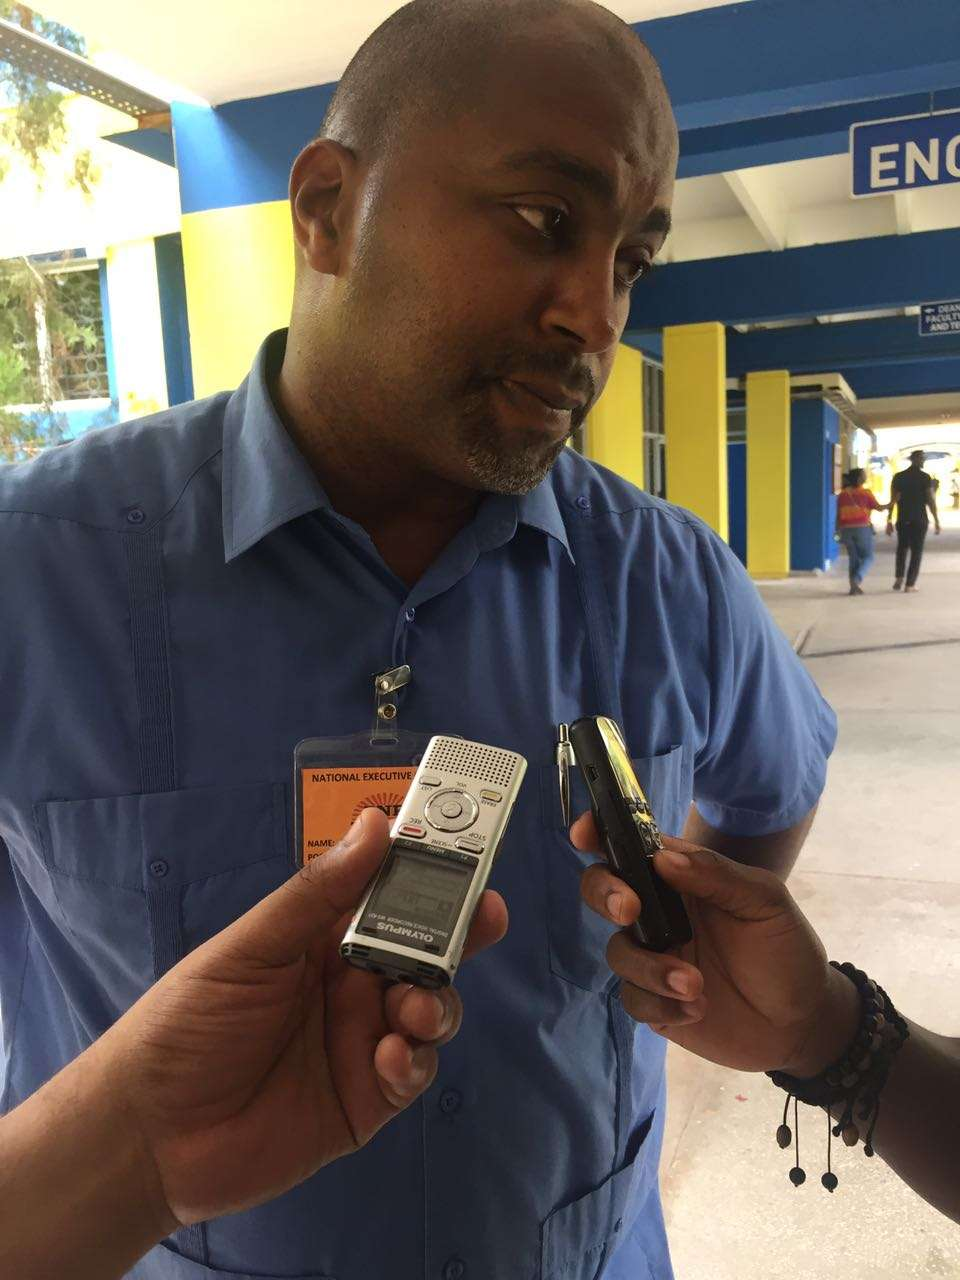 'PNP Not Stifling Free Speech!' – Robinson Defends Controversial Resoultion